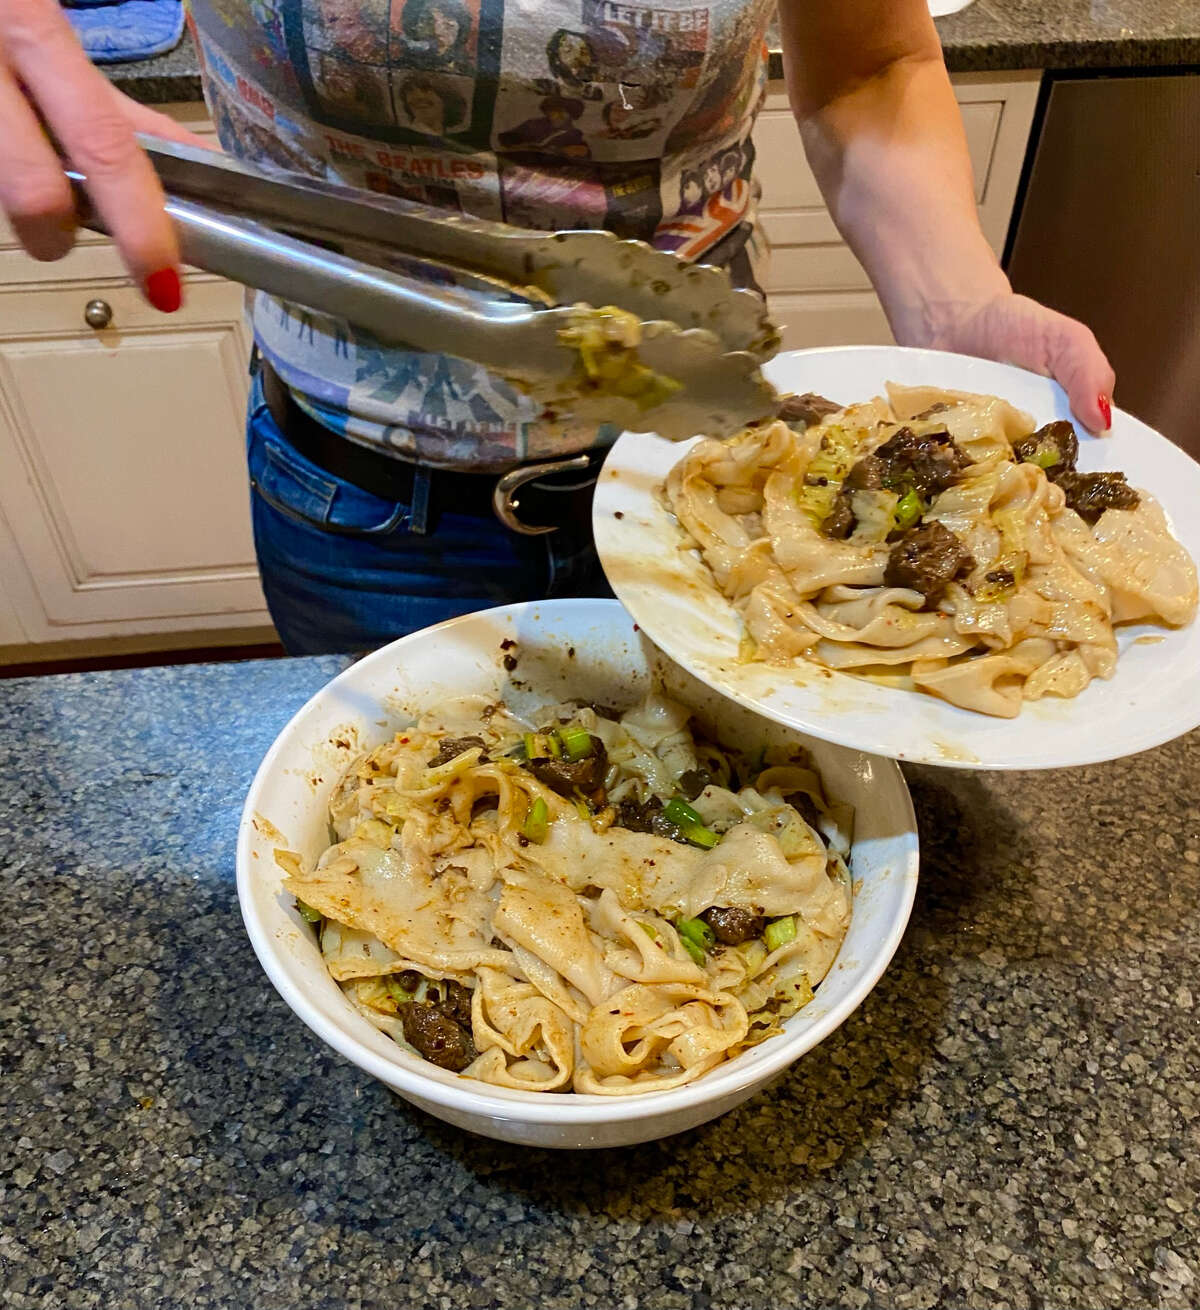 Susie Davidson Powell finishes a noodle dish with beef in a delivery meal kit from Xi'an Famous Foods in New York City. (Provided photo.)